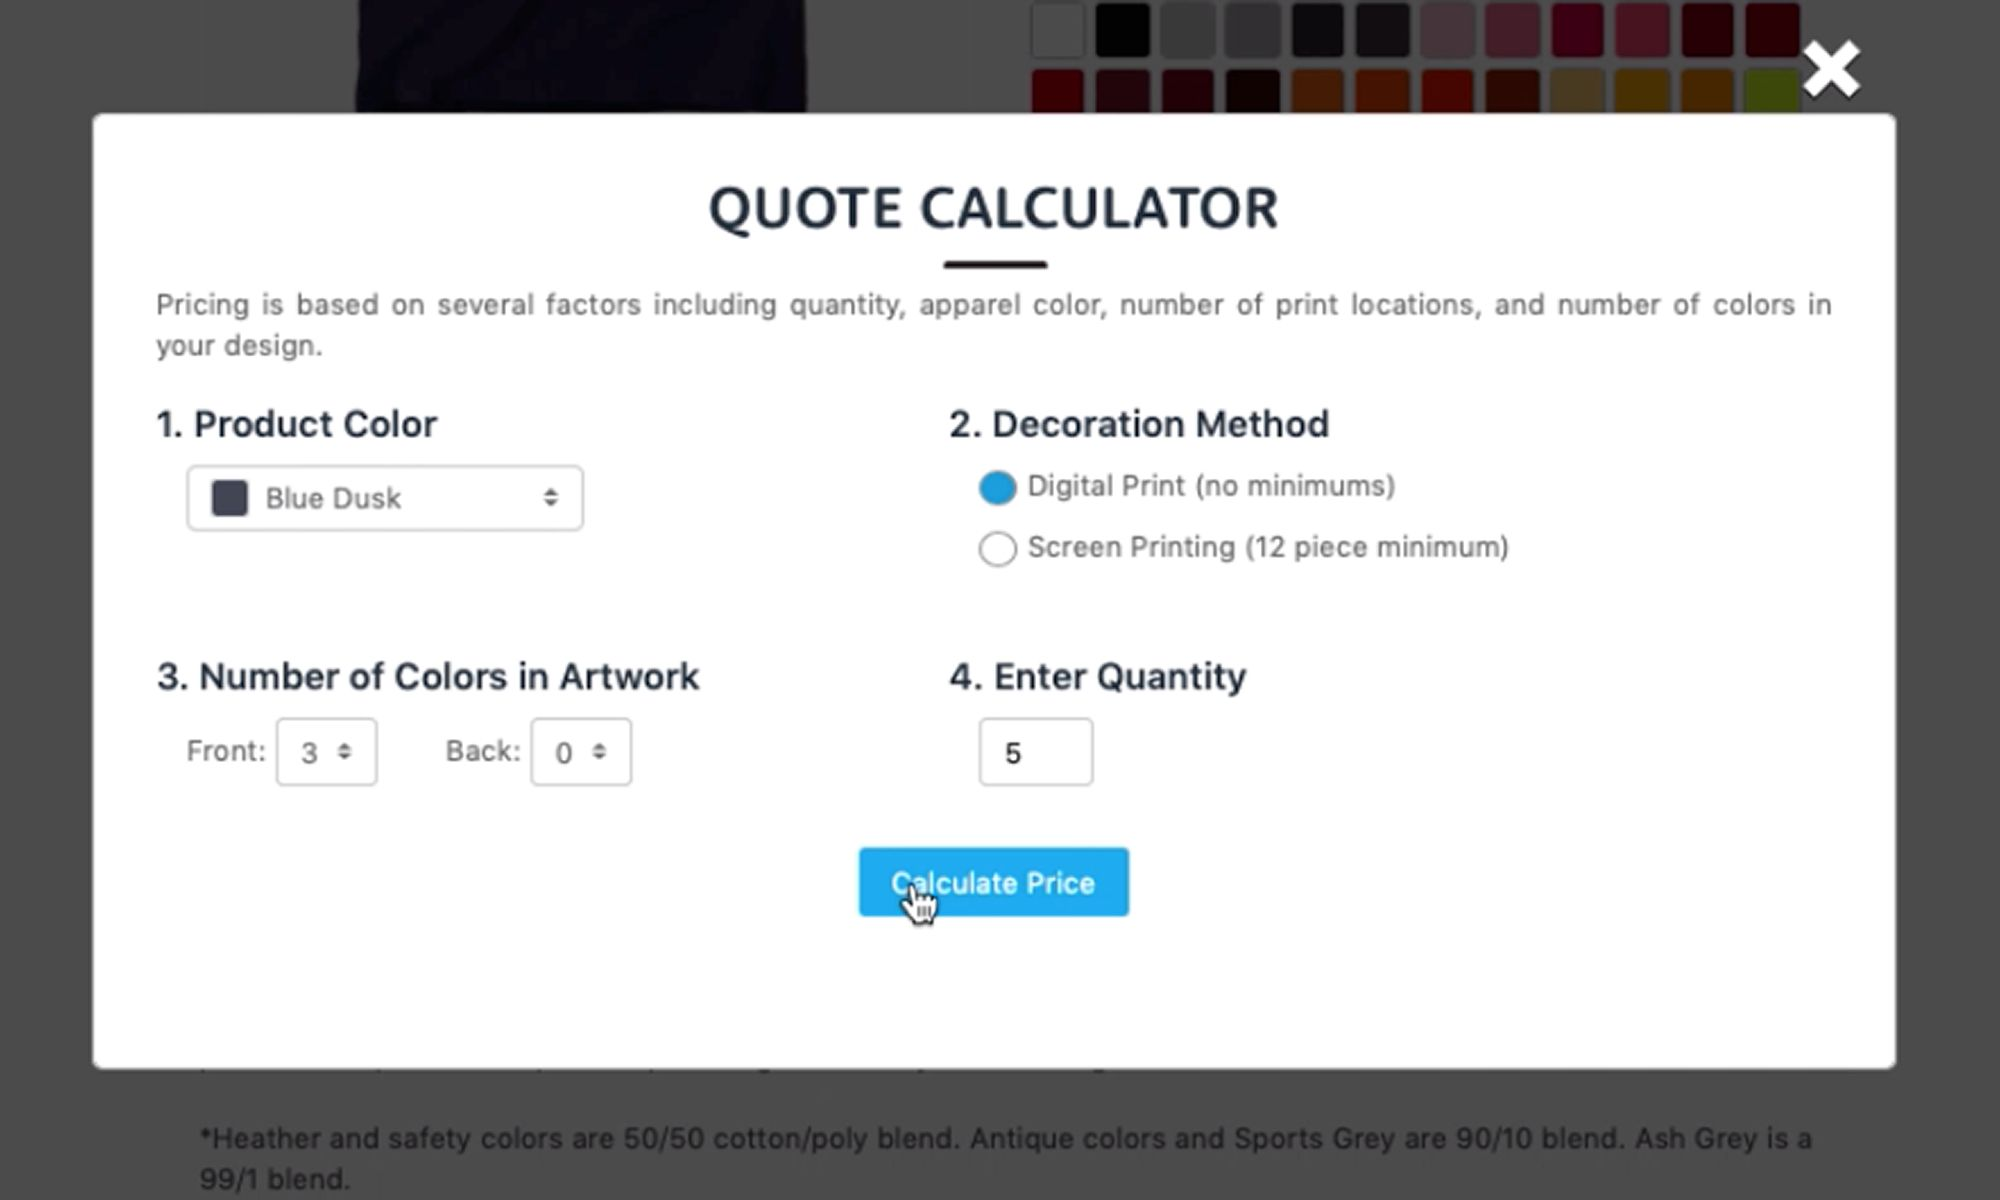 Screenshot from Uberprints.com showing an example of how to use the quote calculator.